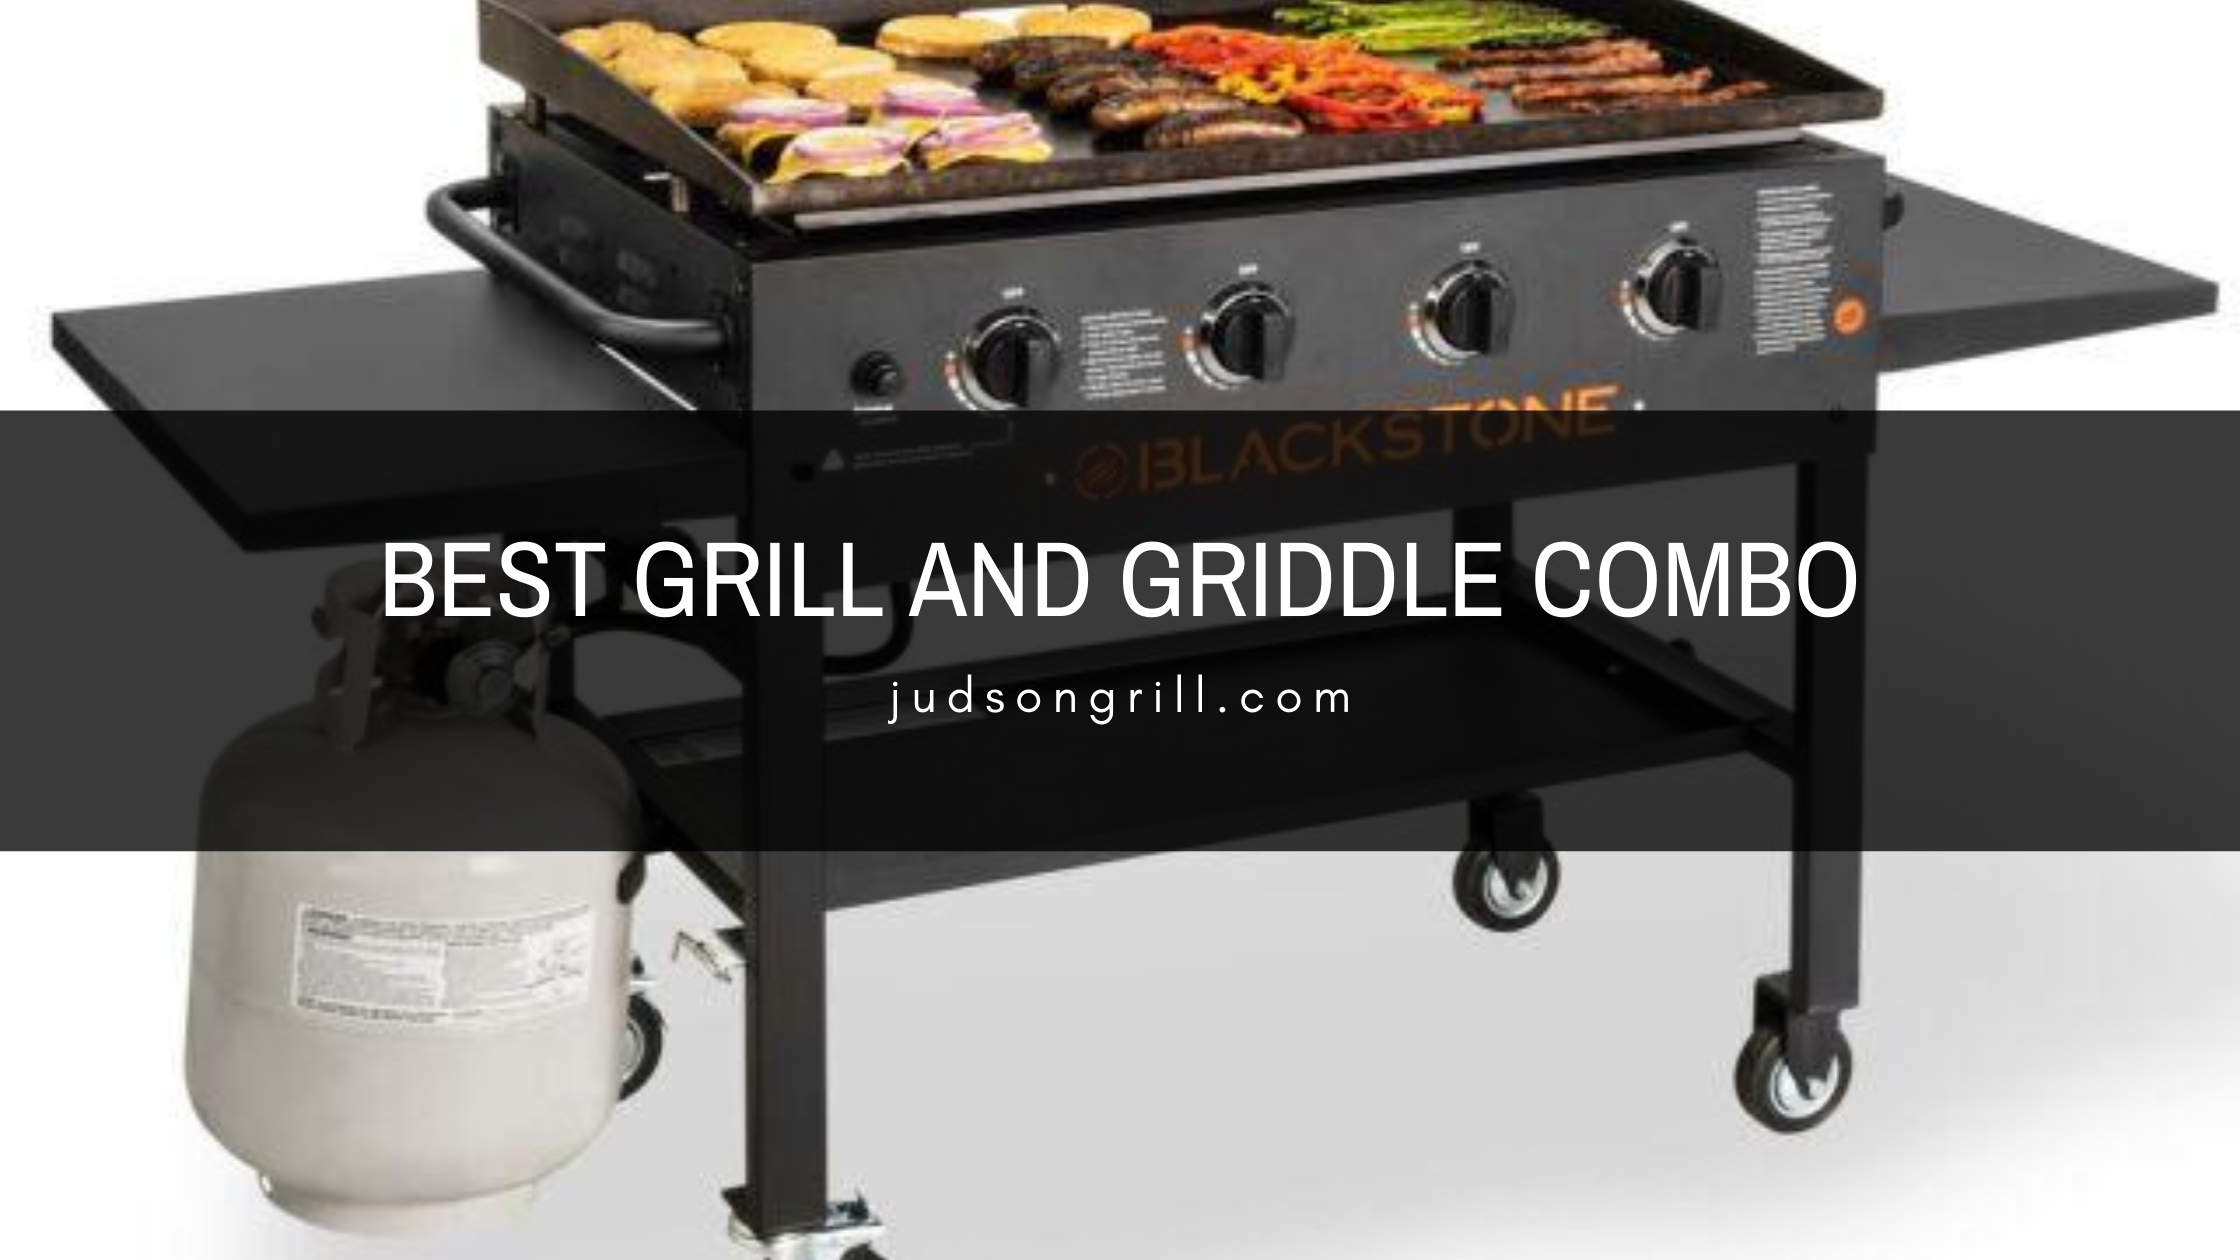 Best Grill And Griddle Combo for 2020